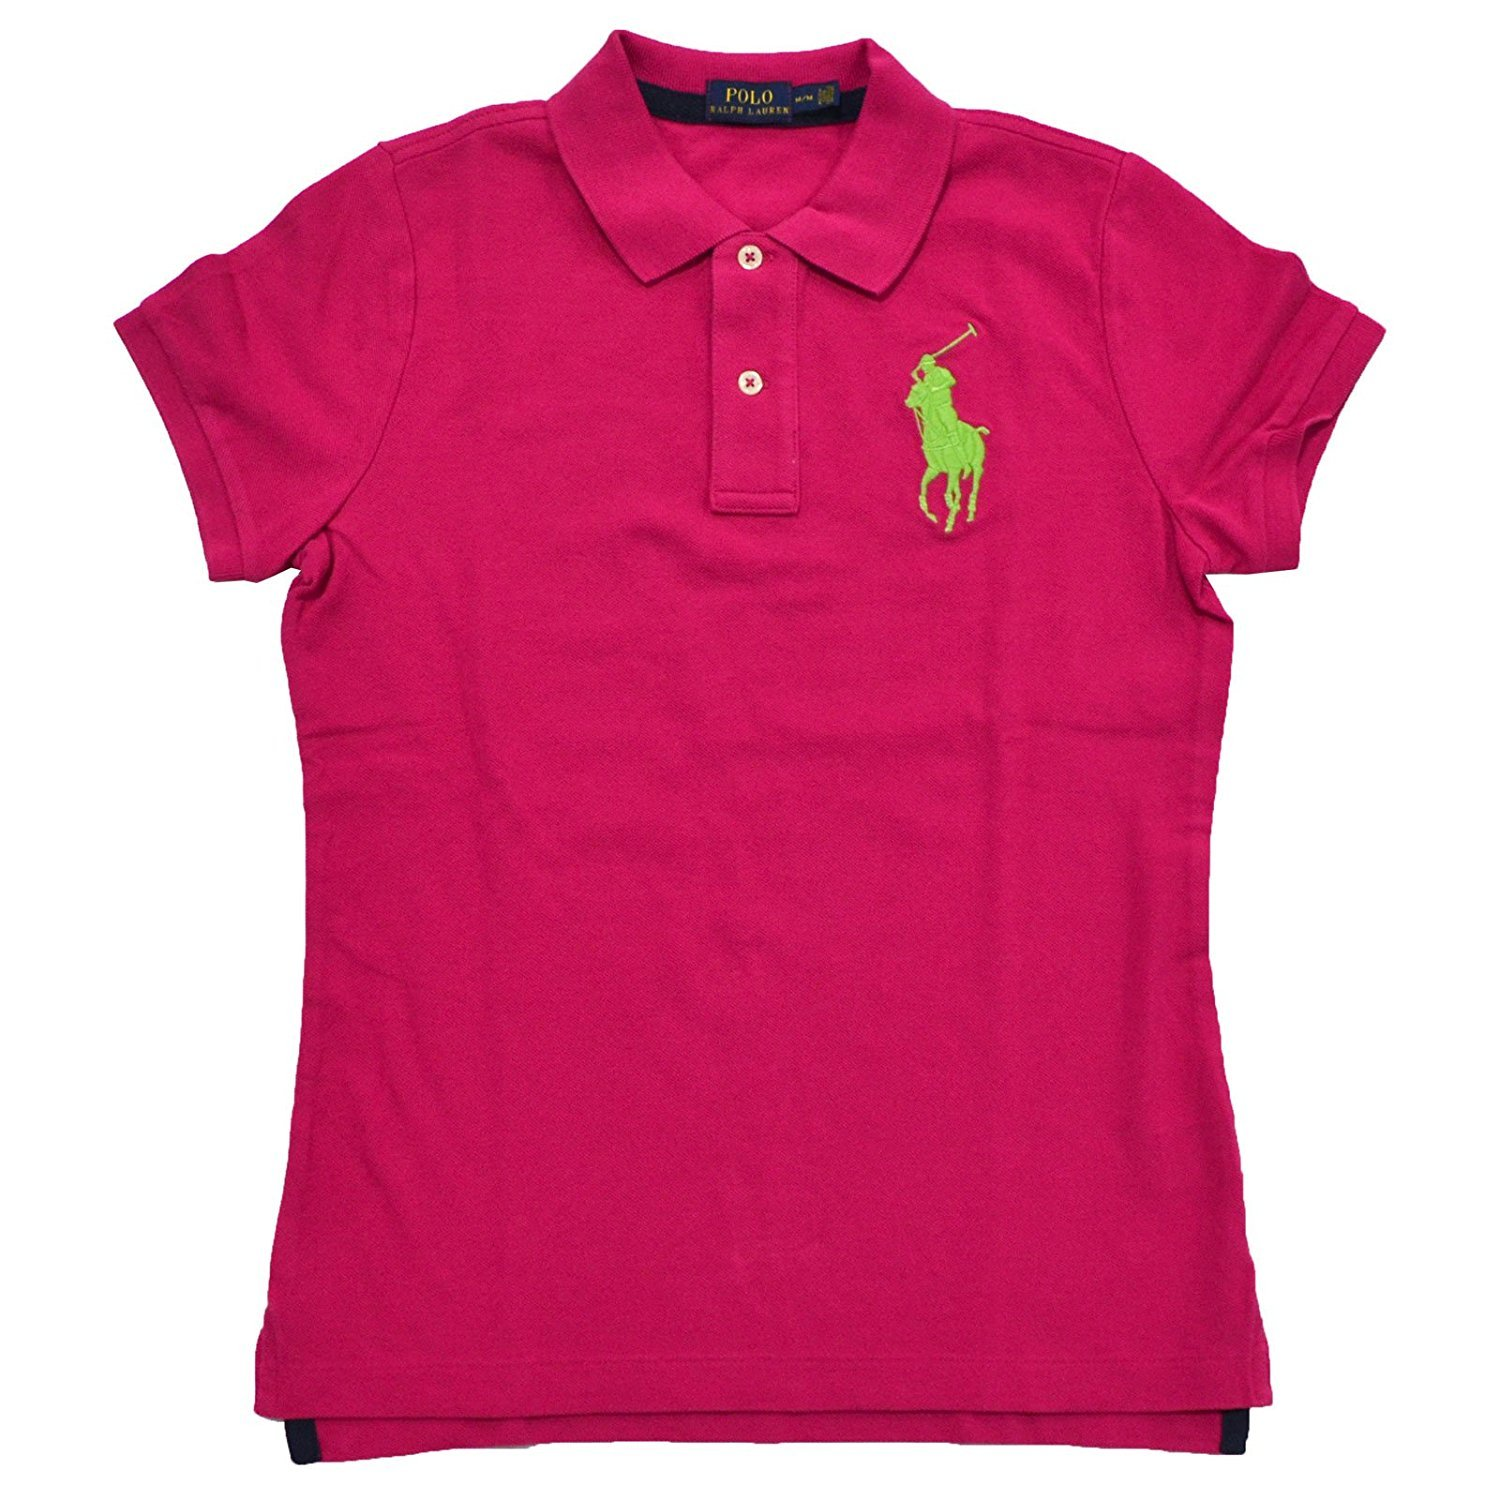 Polo Ralph Lauren Womens Big Pony Polo (Small, Hibiscus Pink Lime Green Pony)